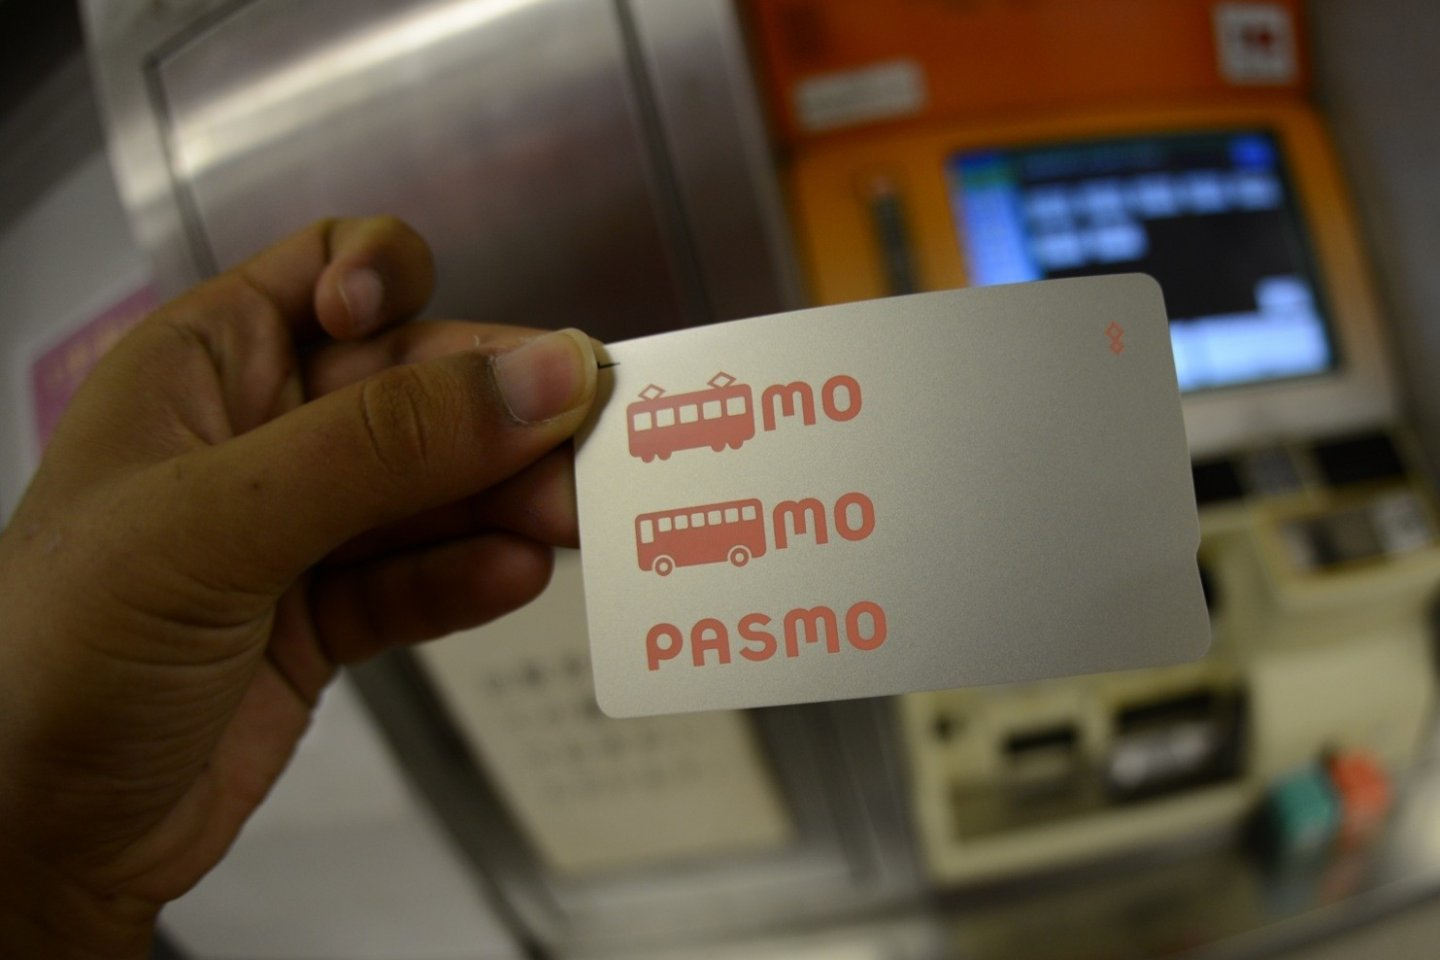 A PASMO card.